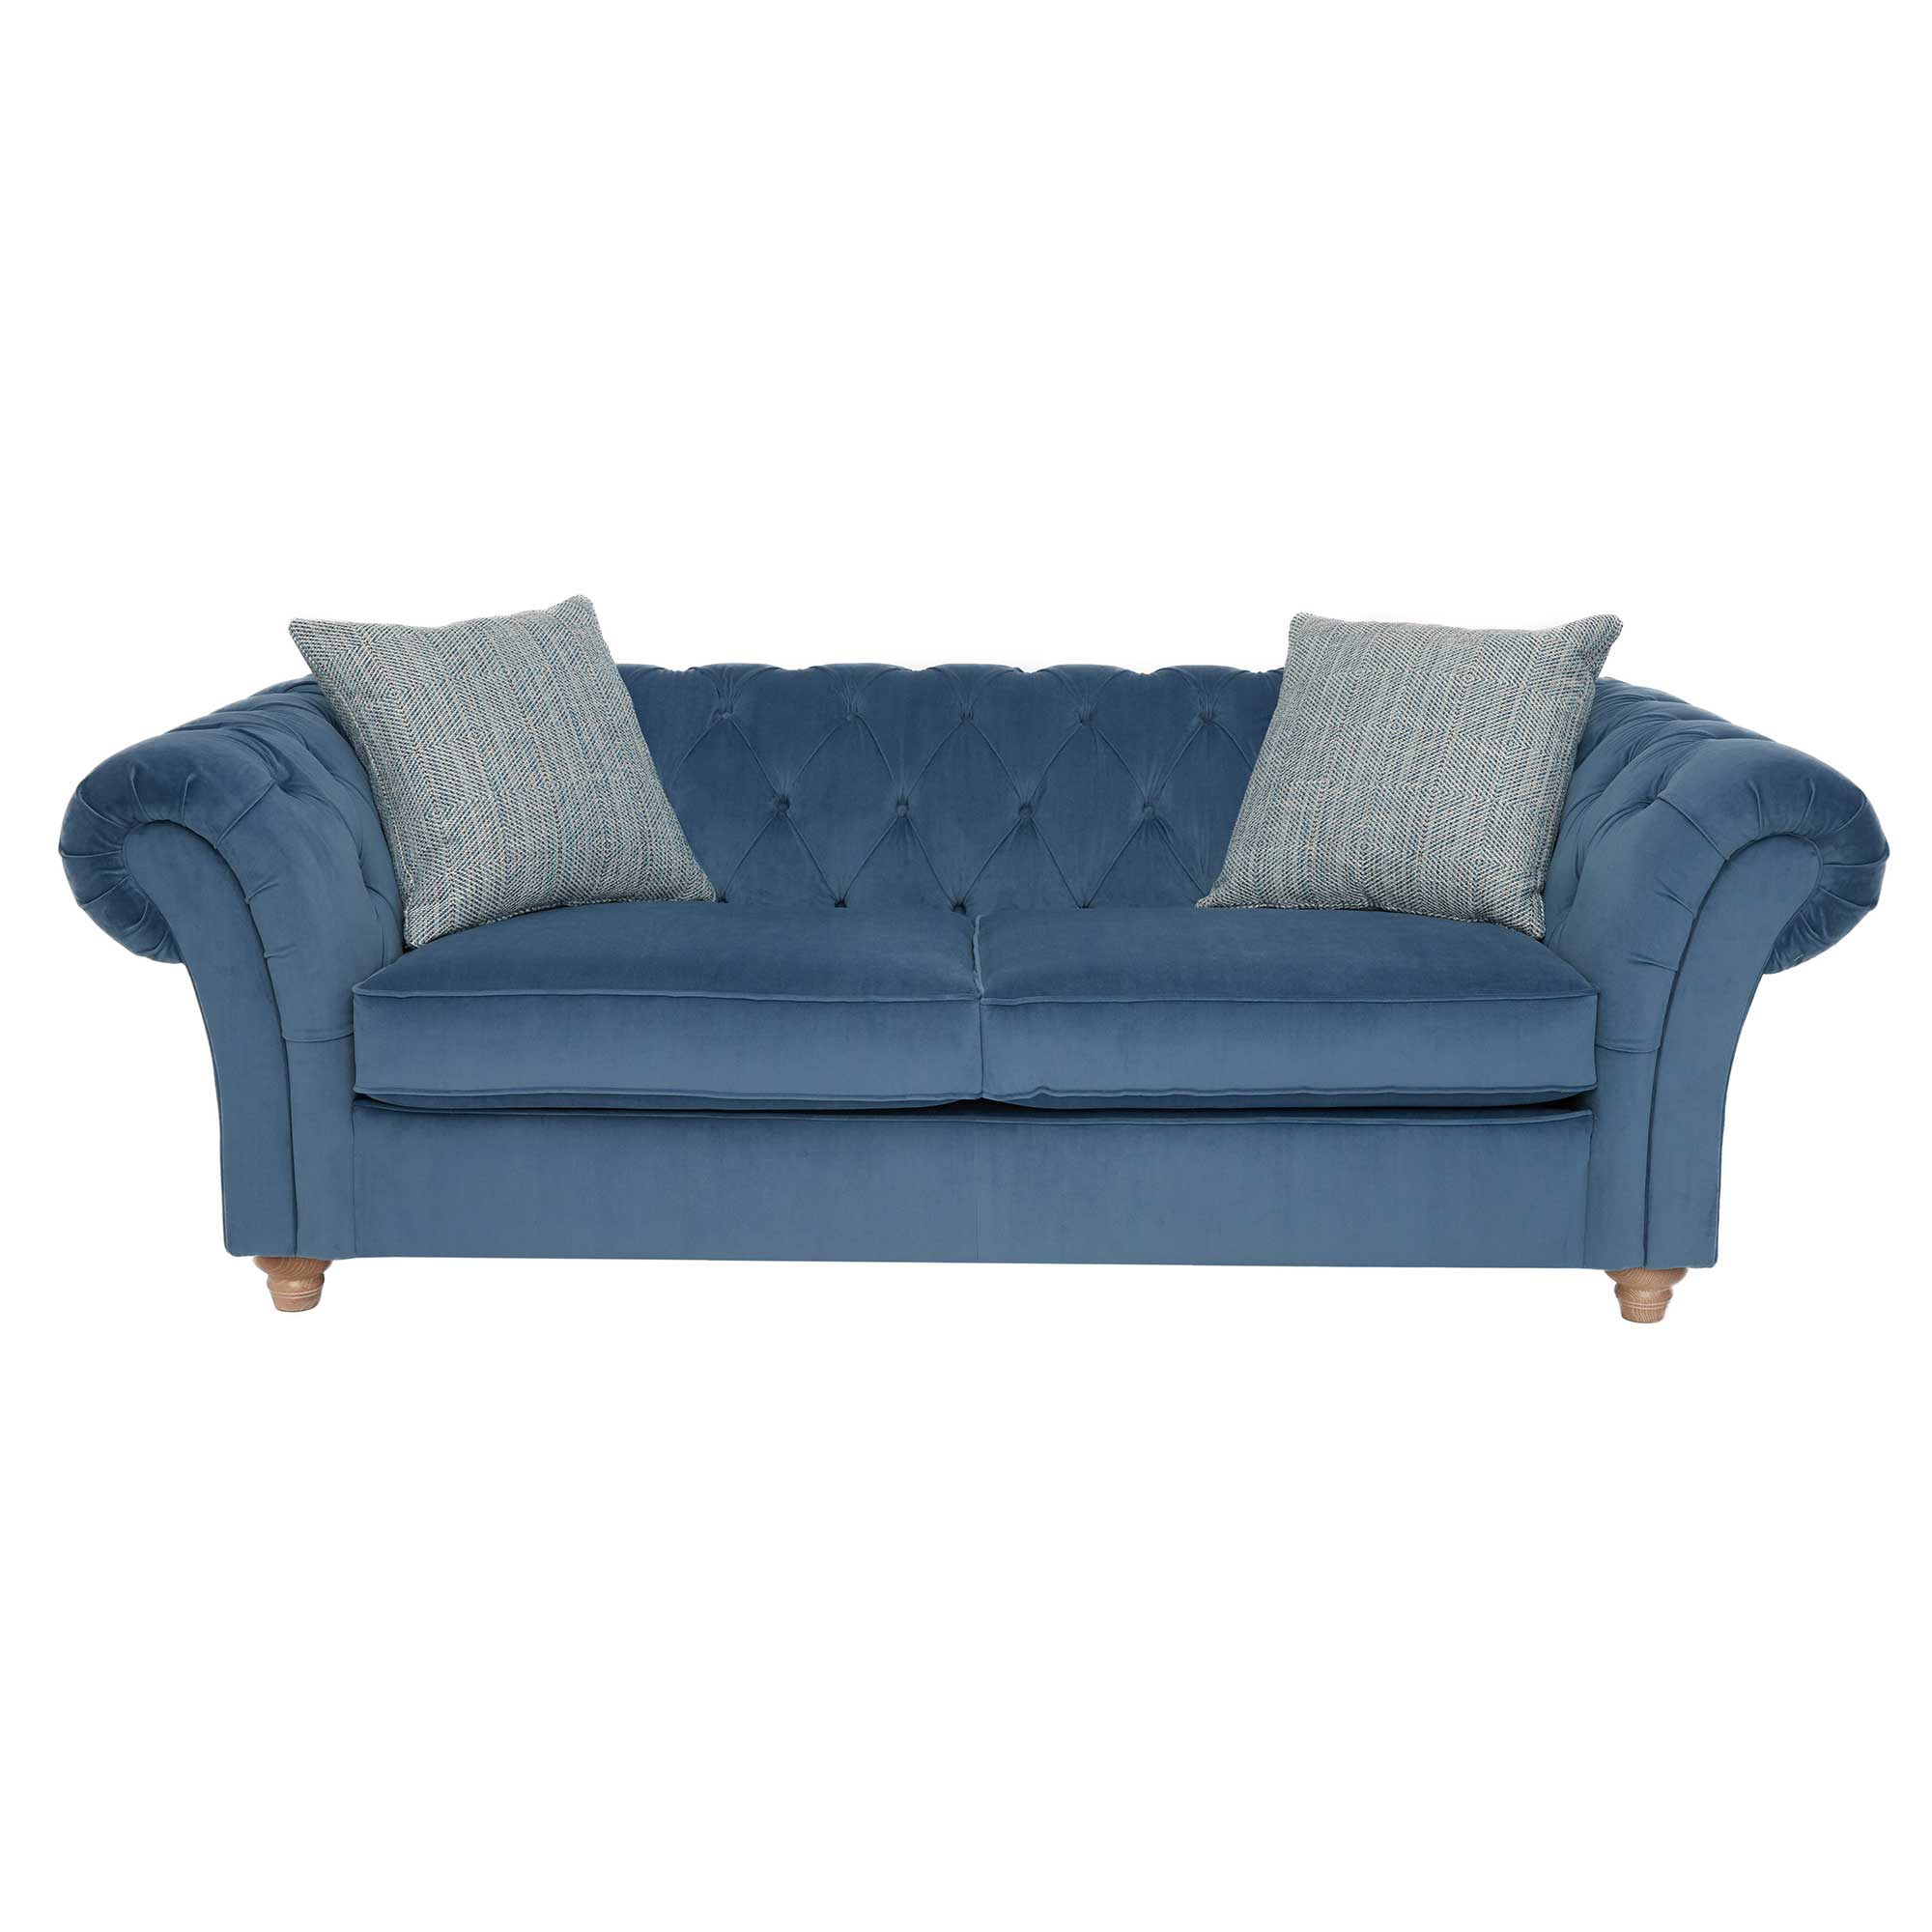 Willow And Hall Sofas : Probably Super Cool Large Chesterfield Intended For Maddox Oversized Sofa Chairs (View 7 of 25)